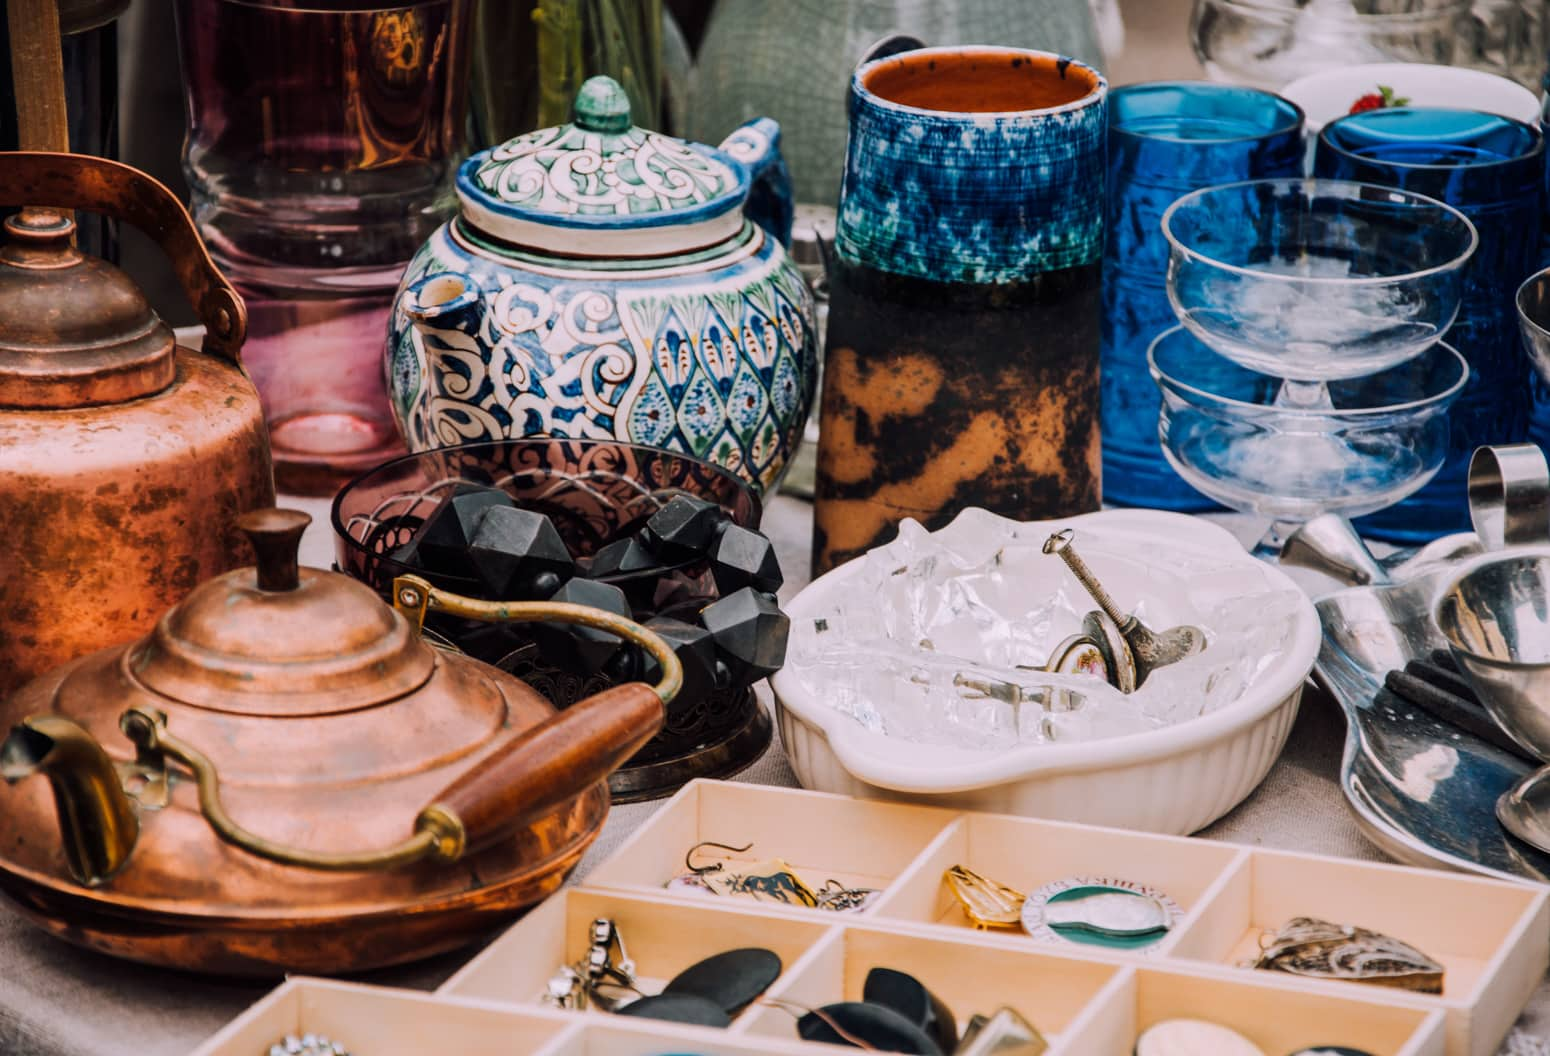 A variety of antique dishes and pots